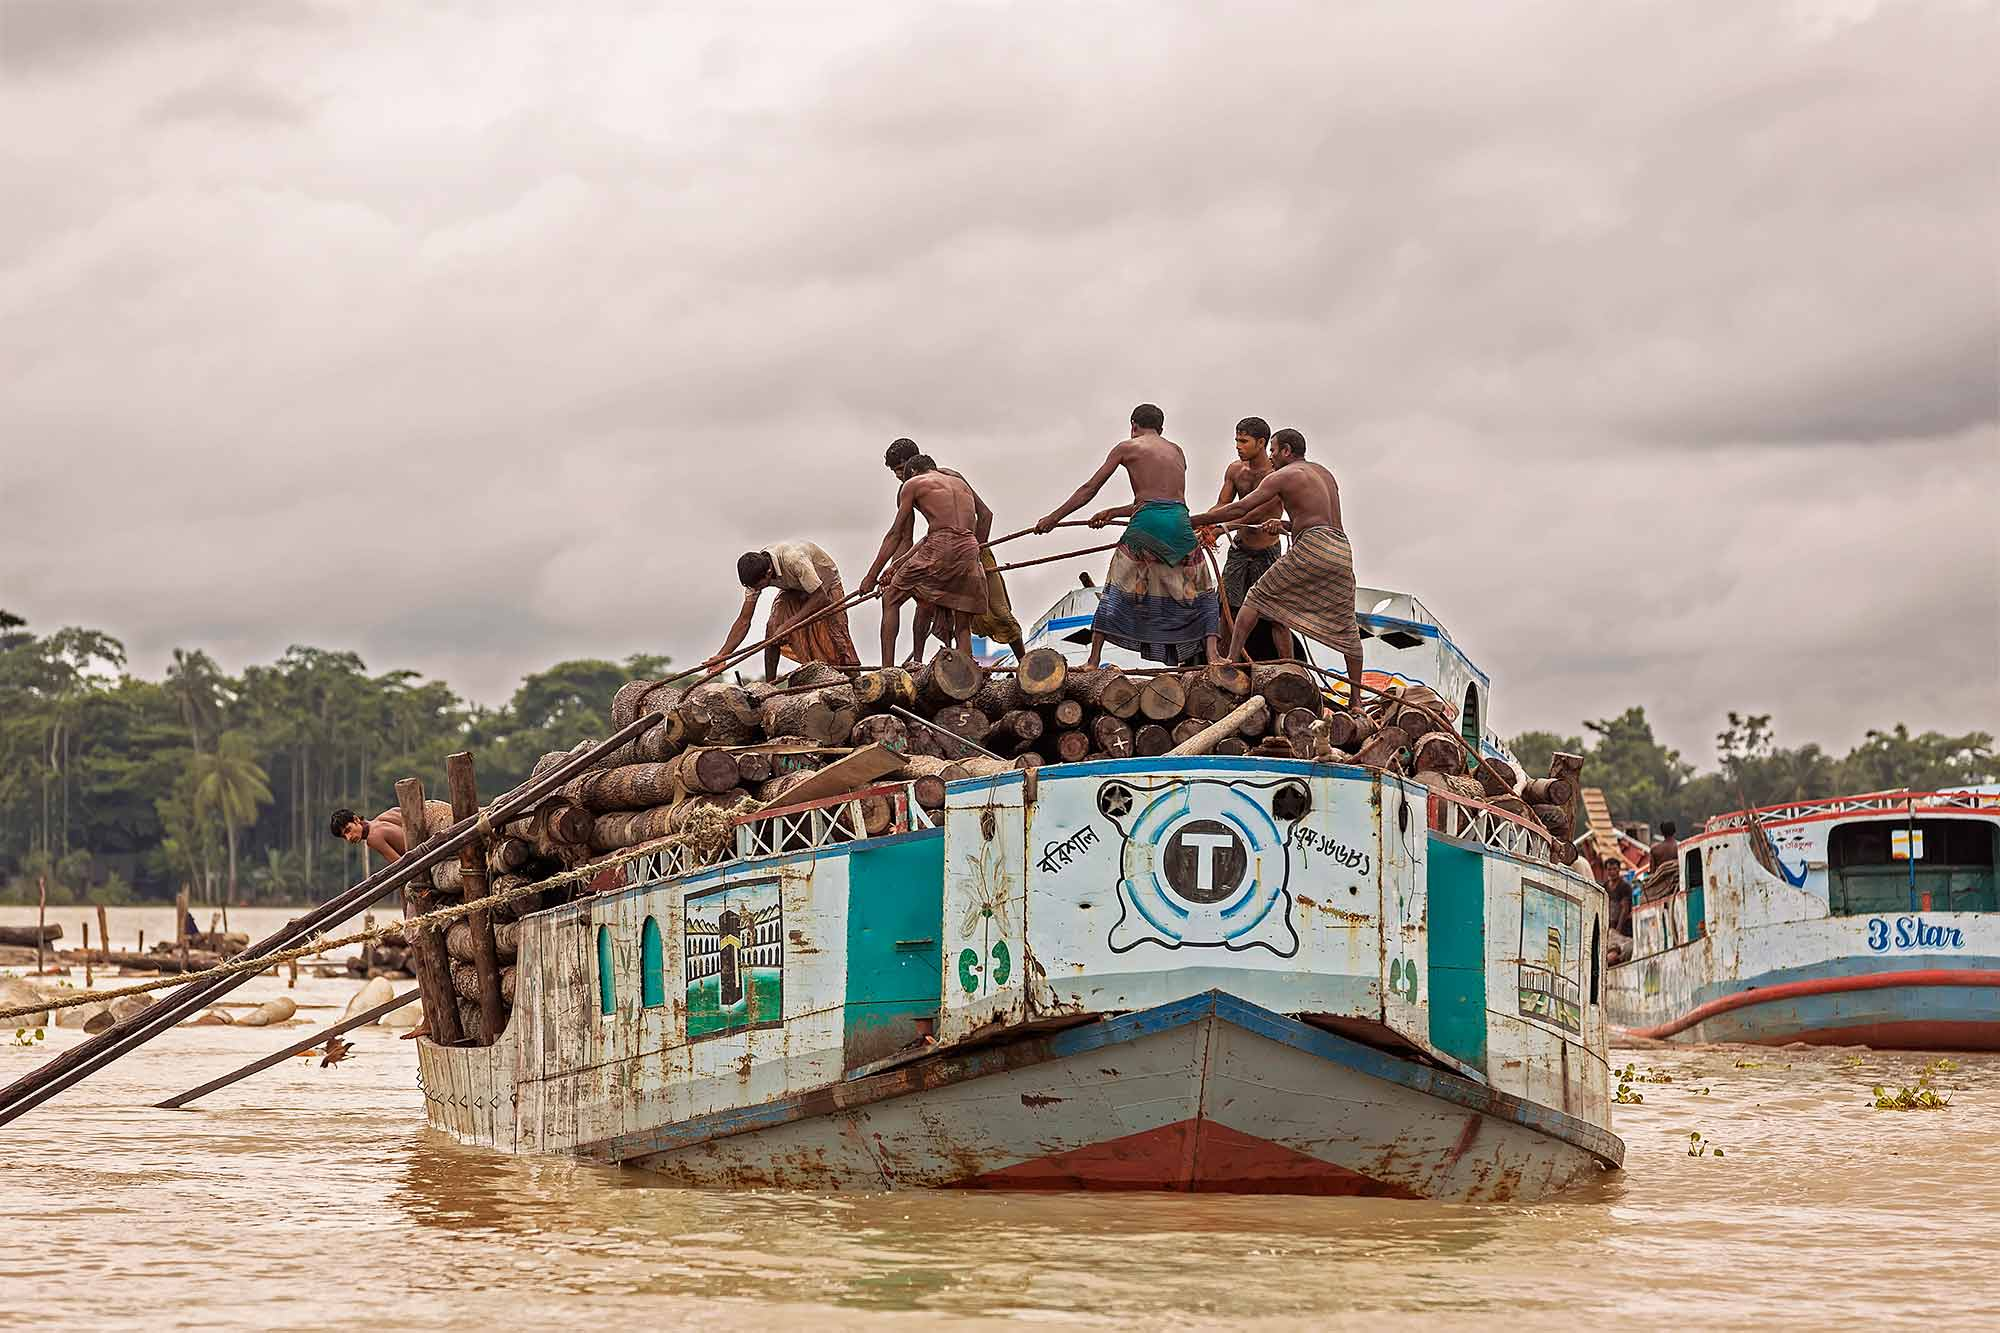 Men loading up a boat with wood trunks in Swarupkati, Bangladesh. © Ulli Maier & Nisa Maier